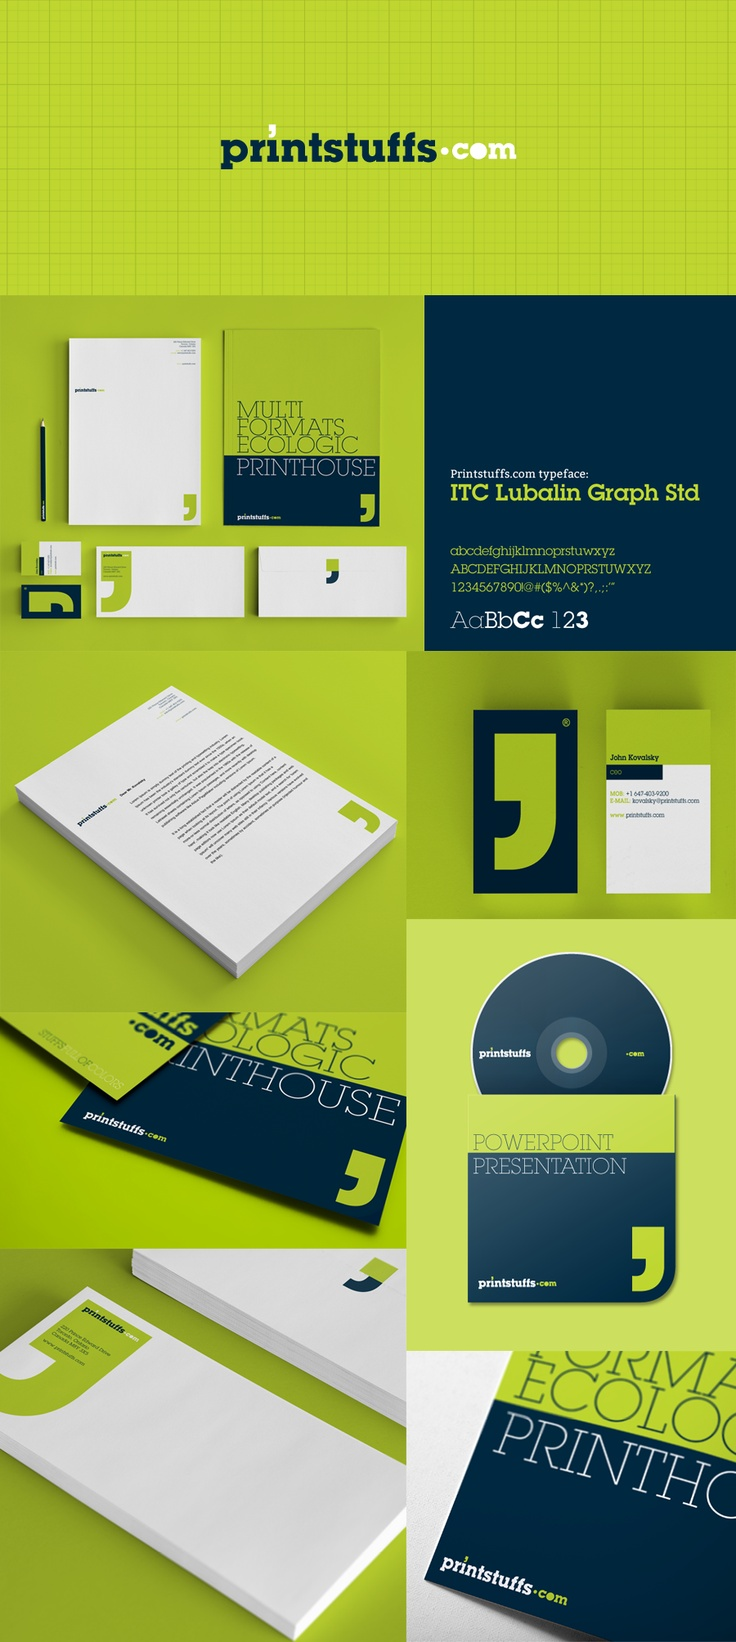 printstuffs.com #design #identity #branding #marketing